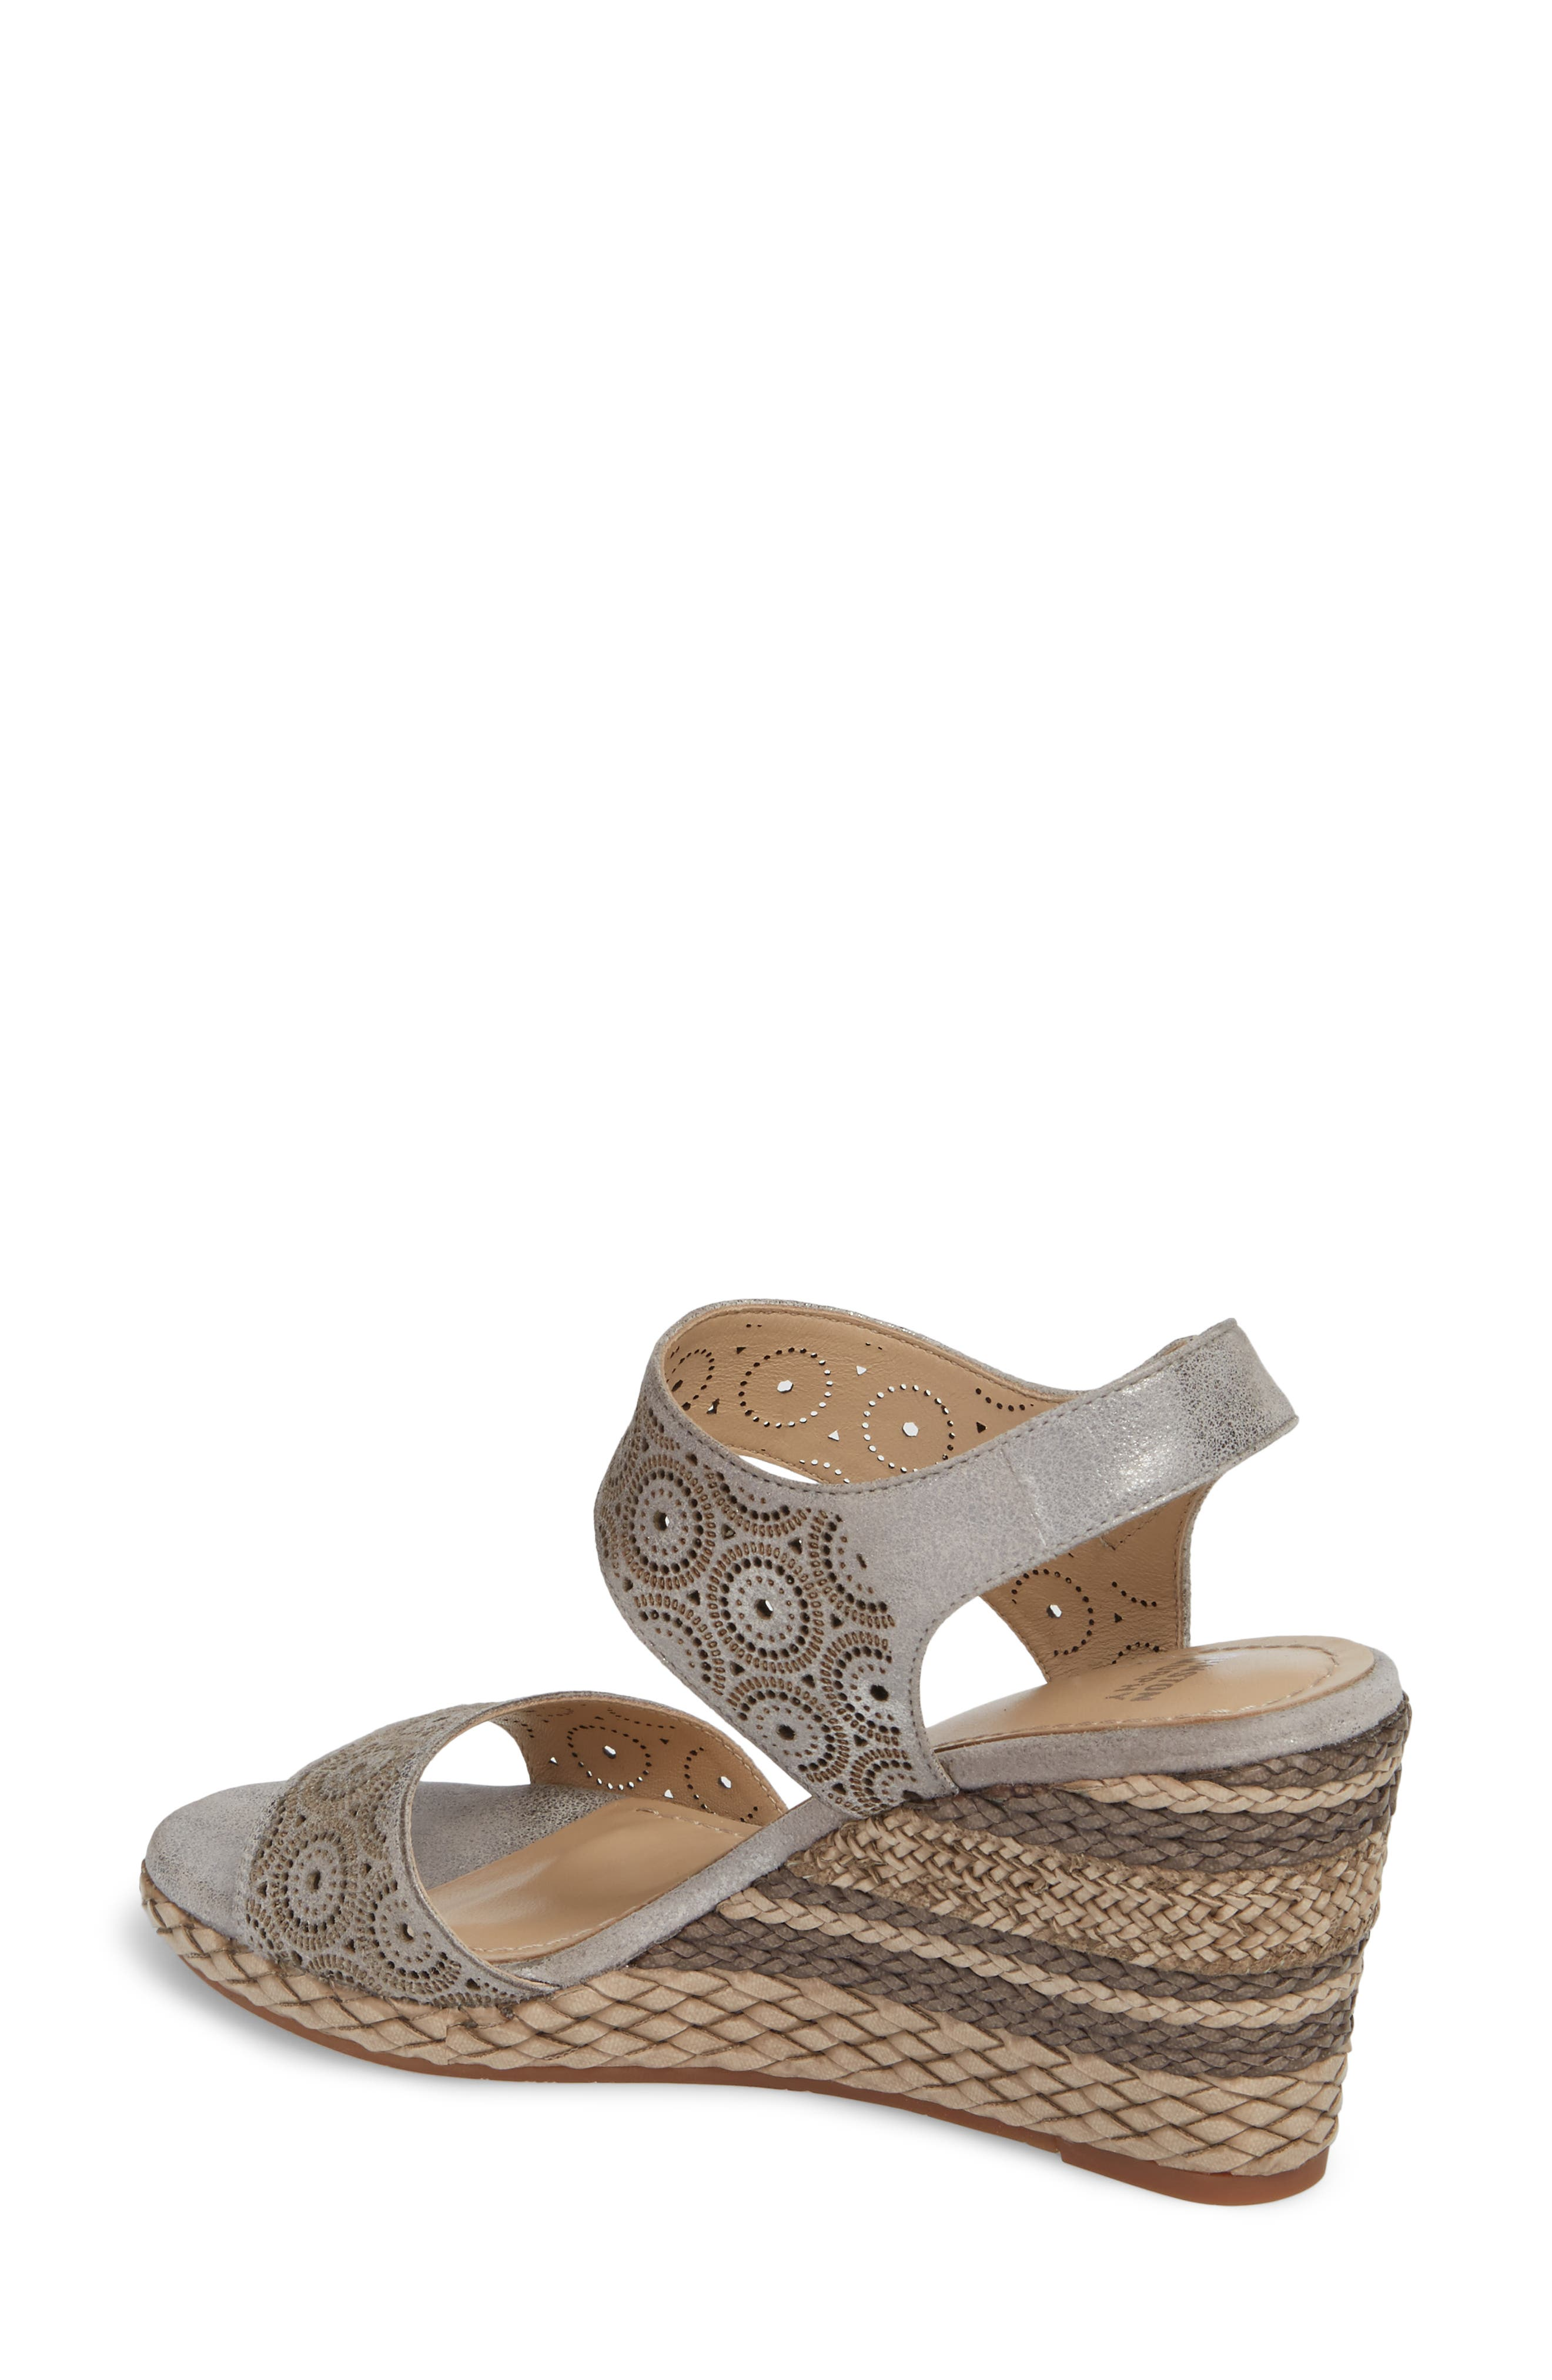 Georgiana Wedge Sandal,                             Alternate thumbnail 2, color,                             Pewter Leather